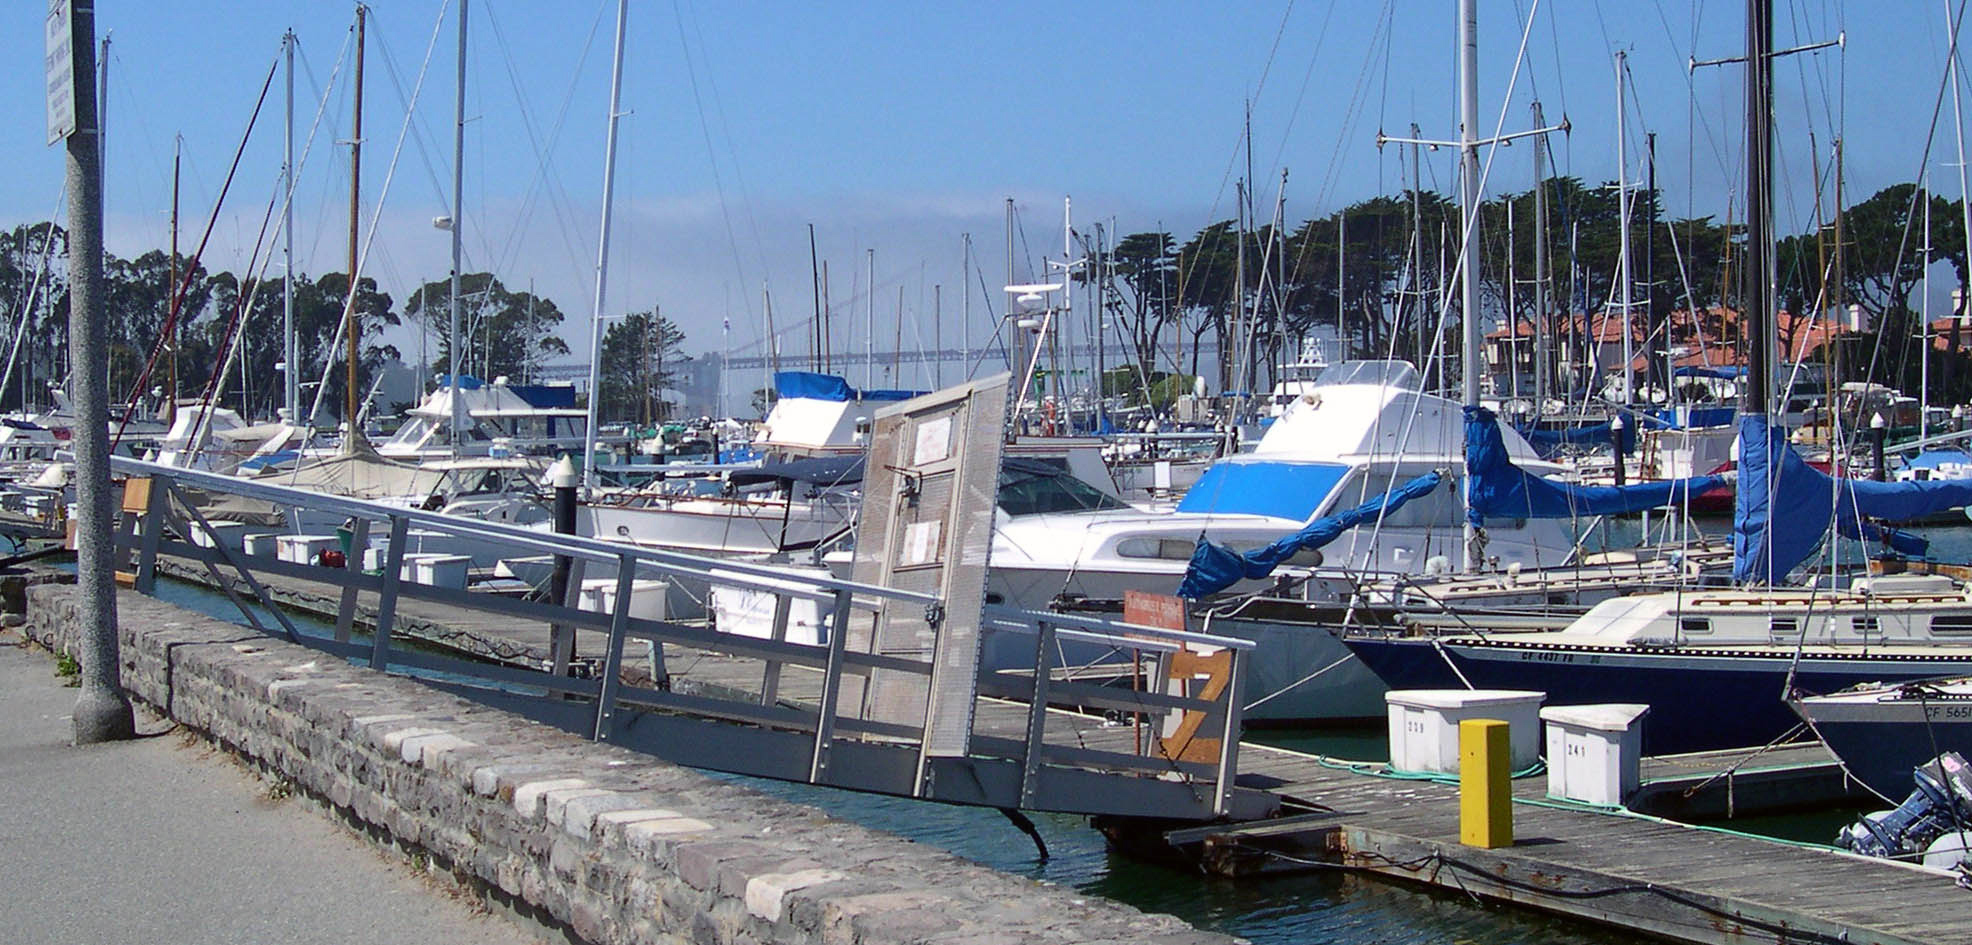 The House On Telegraph Hill -  Yacht Harbor